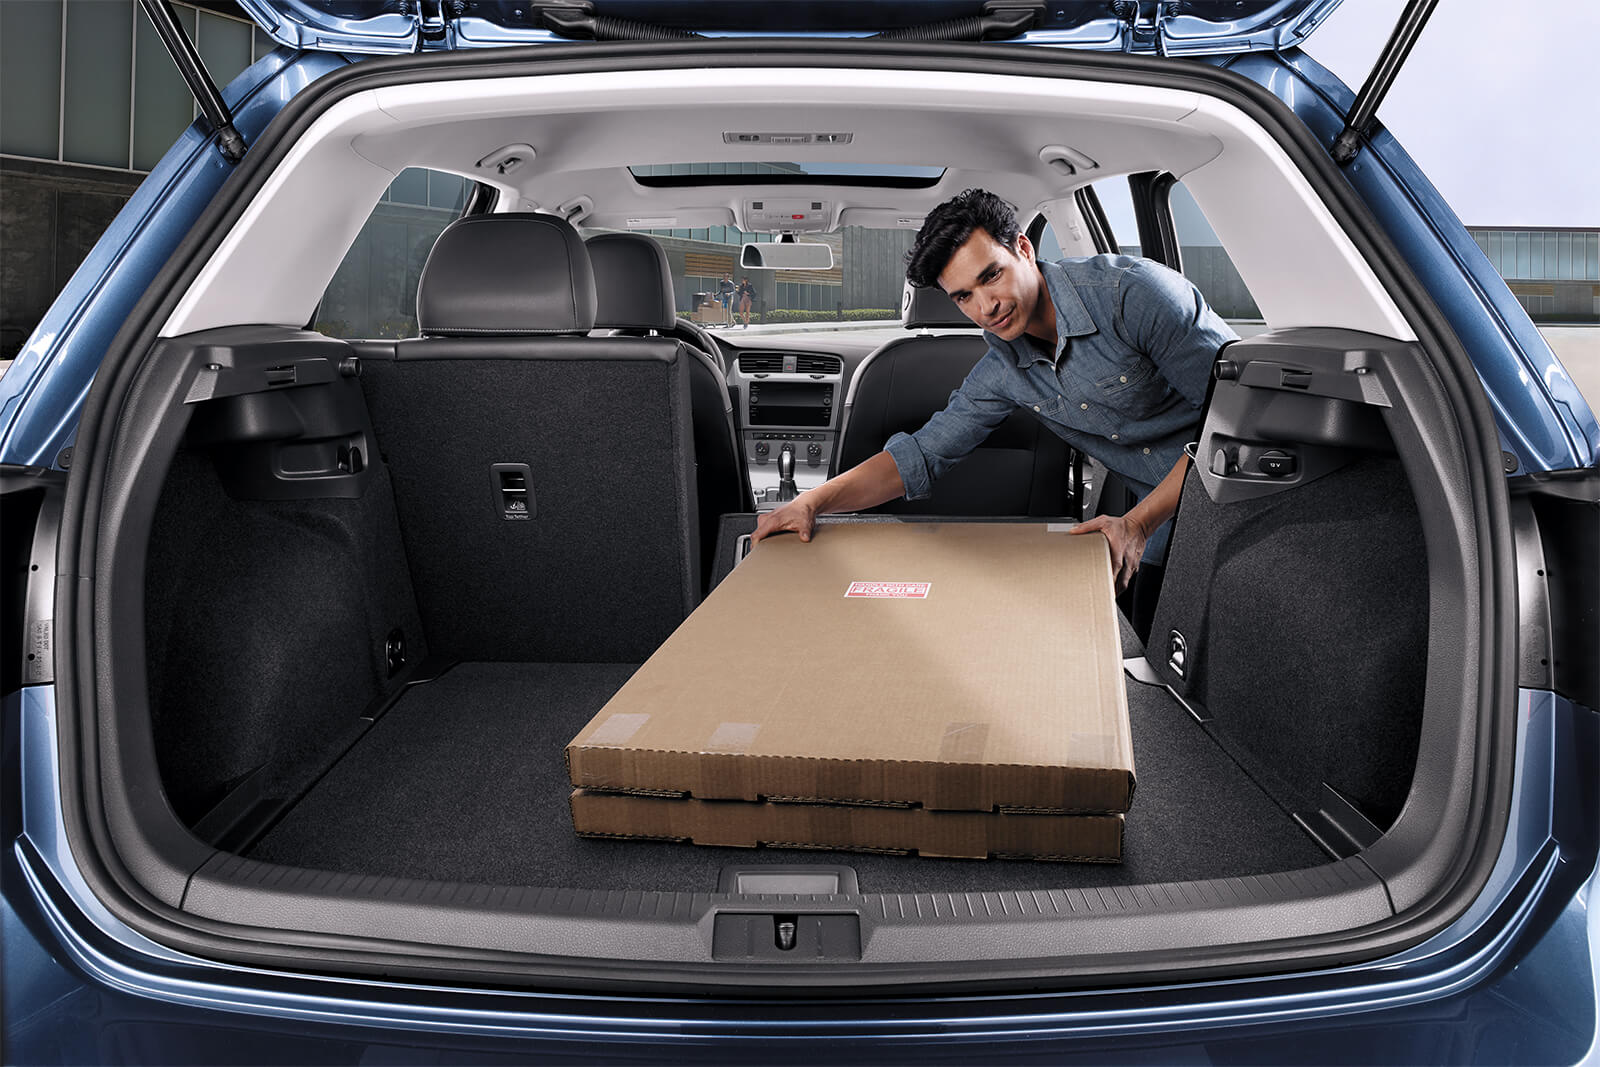 Cargo Options in the Golf